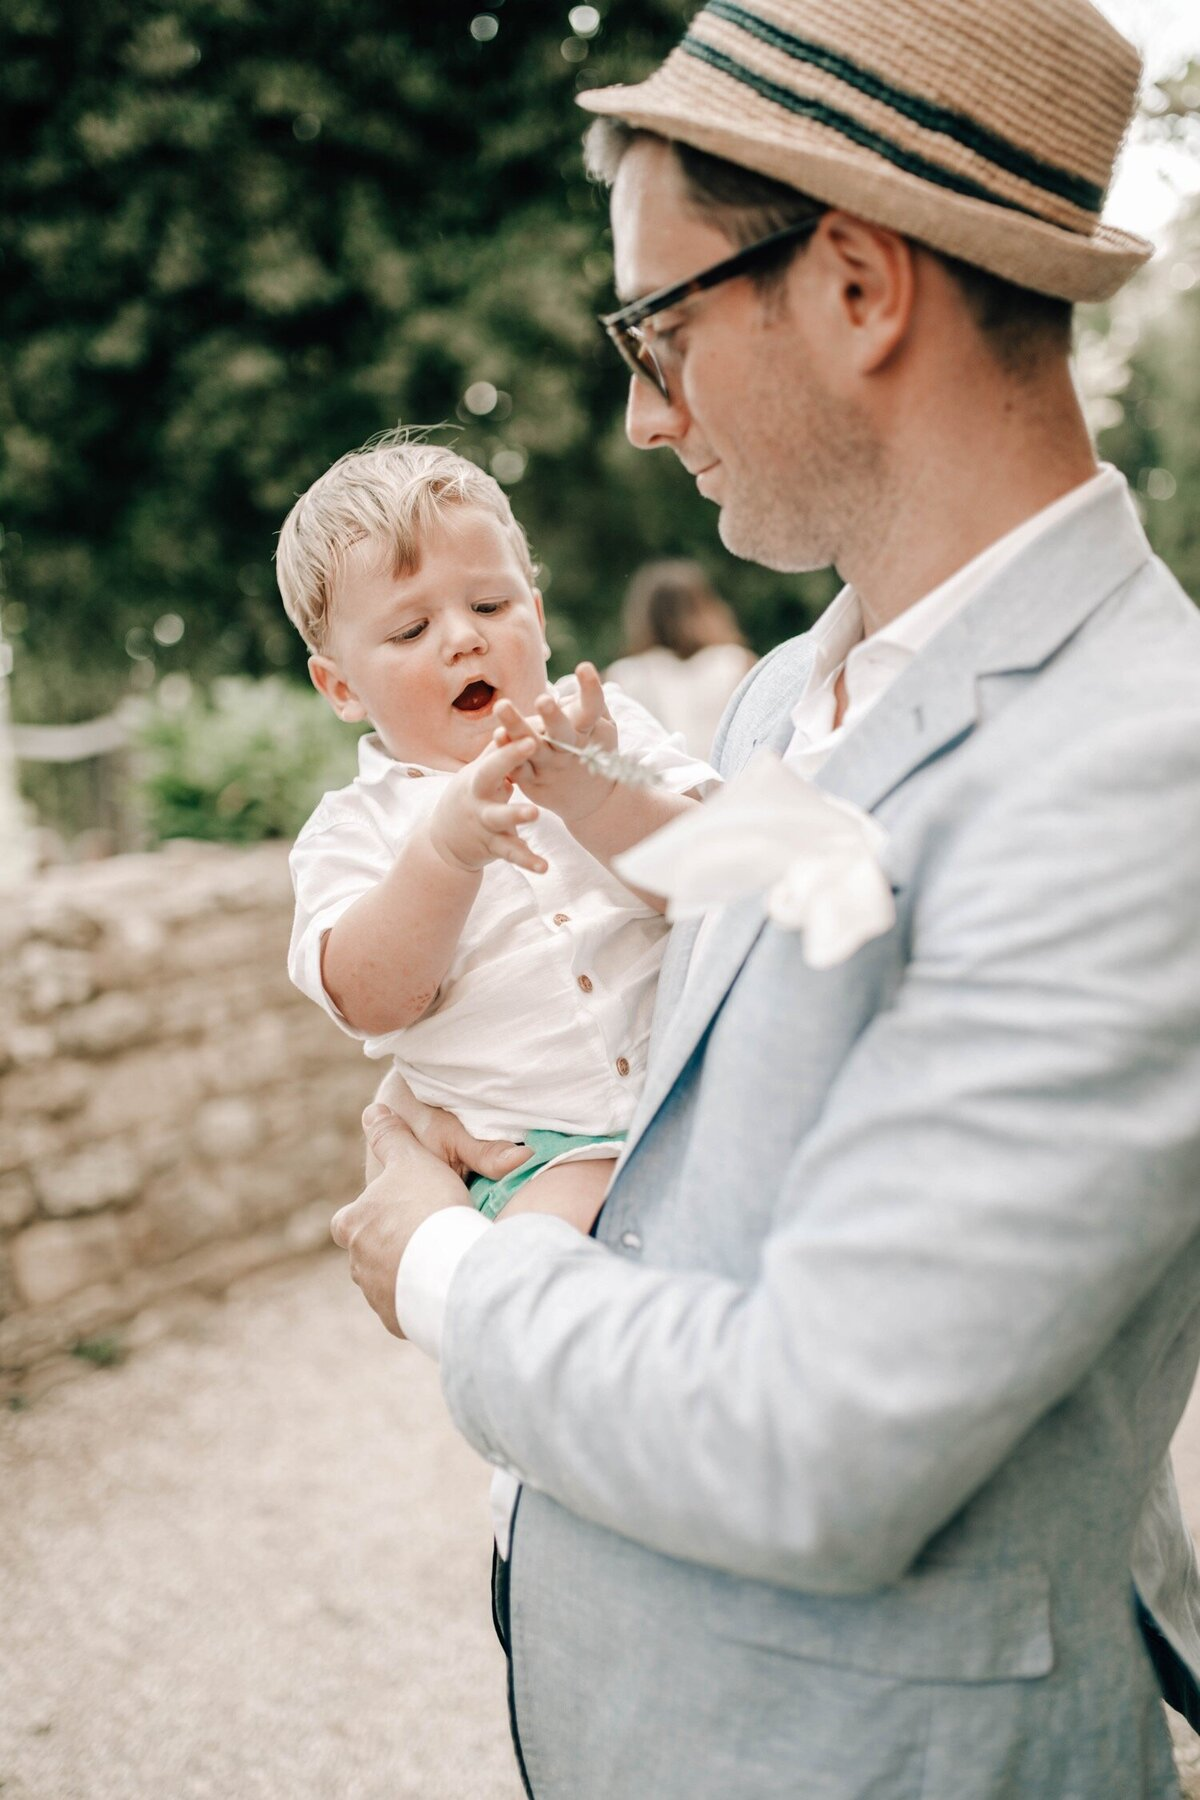 085_Tuscany_Luxury_Wedding_Photographer (95 von 215)_So thankful to be a luxury destination wedding photographer in Tuscany! Claire and James invited their beloved family & friends from London to their luxury wedding in Tuscany.